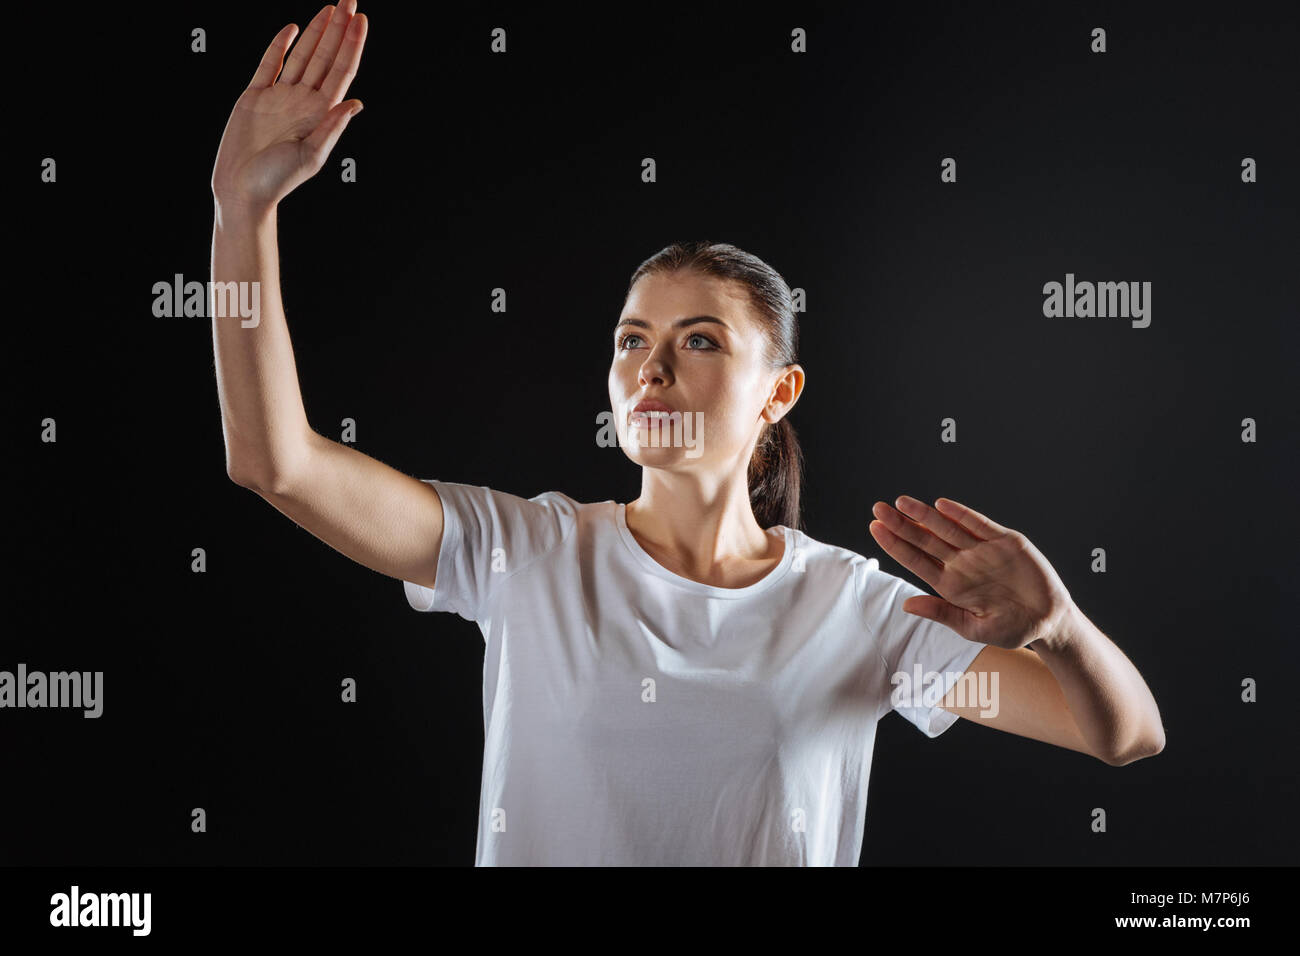 Funny cute woman lifting hands and looking up. - Stock Image